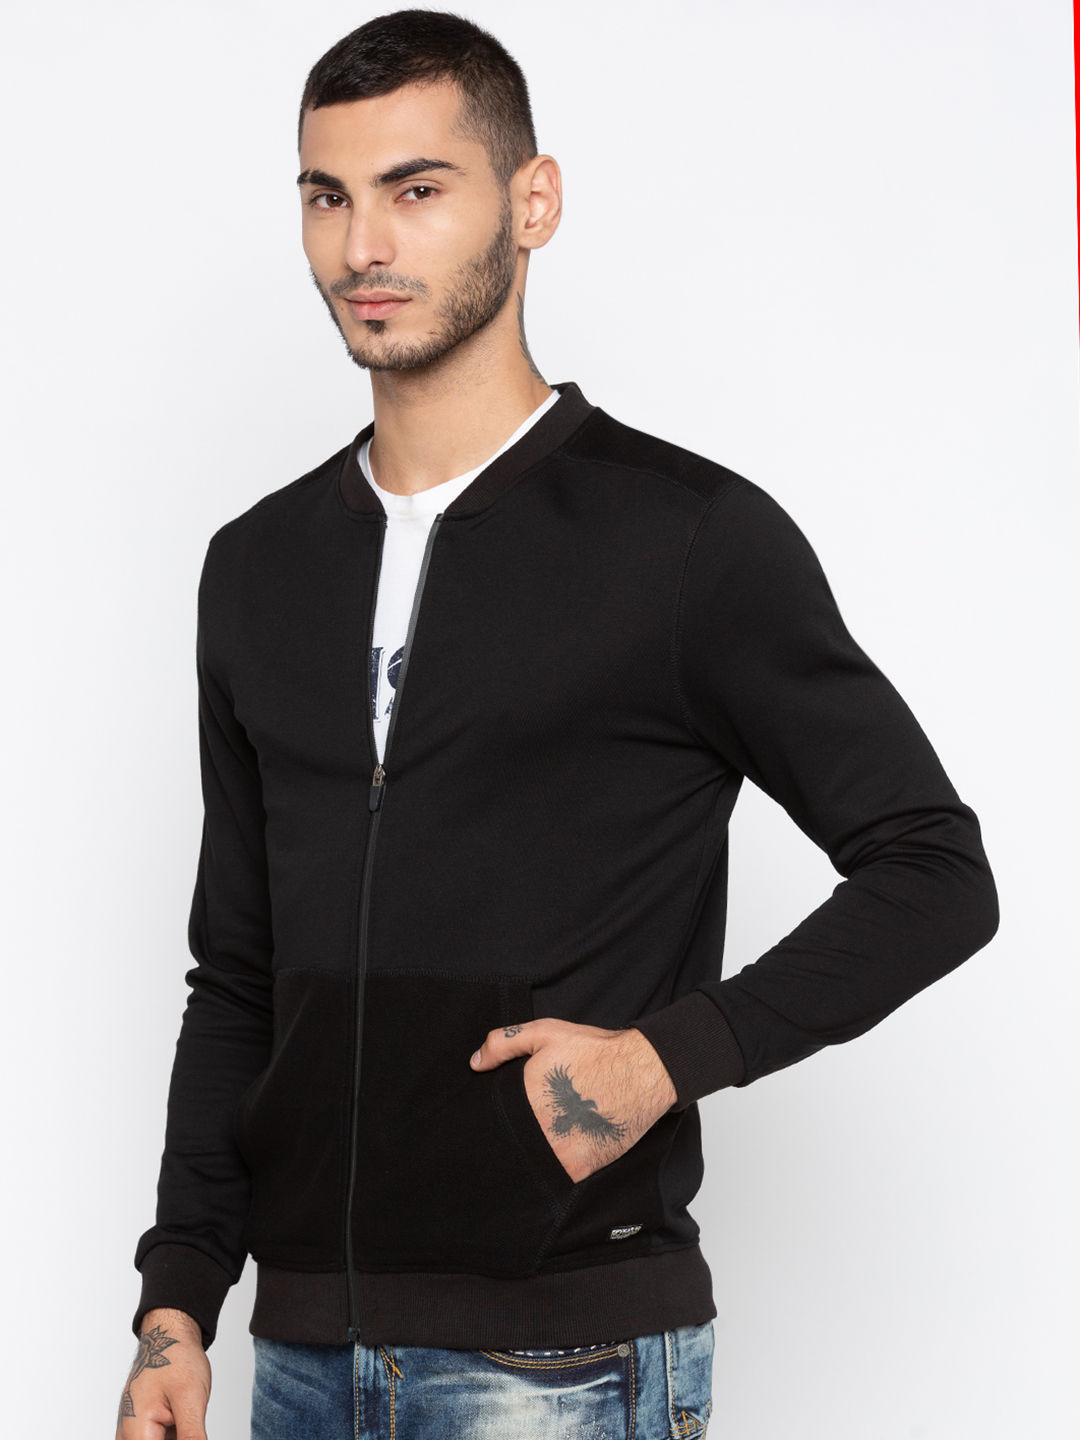 Black Solid Slim Fit Front Open Jackets